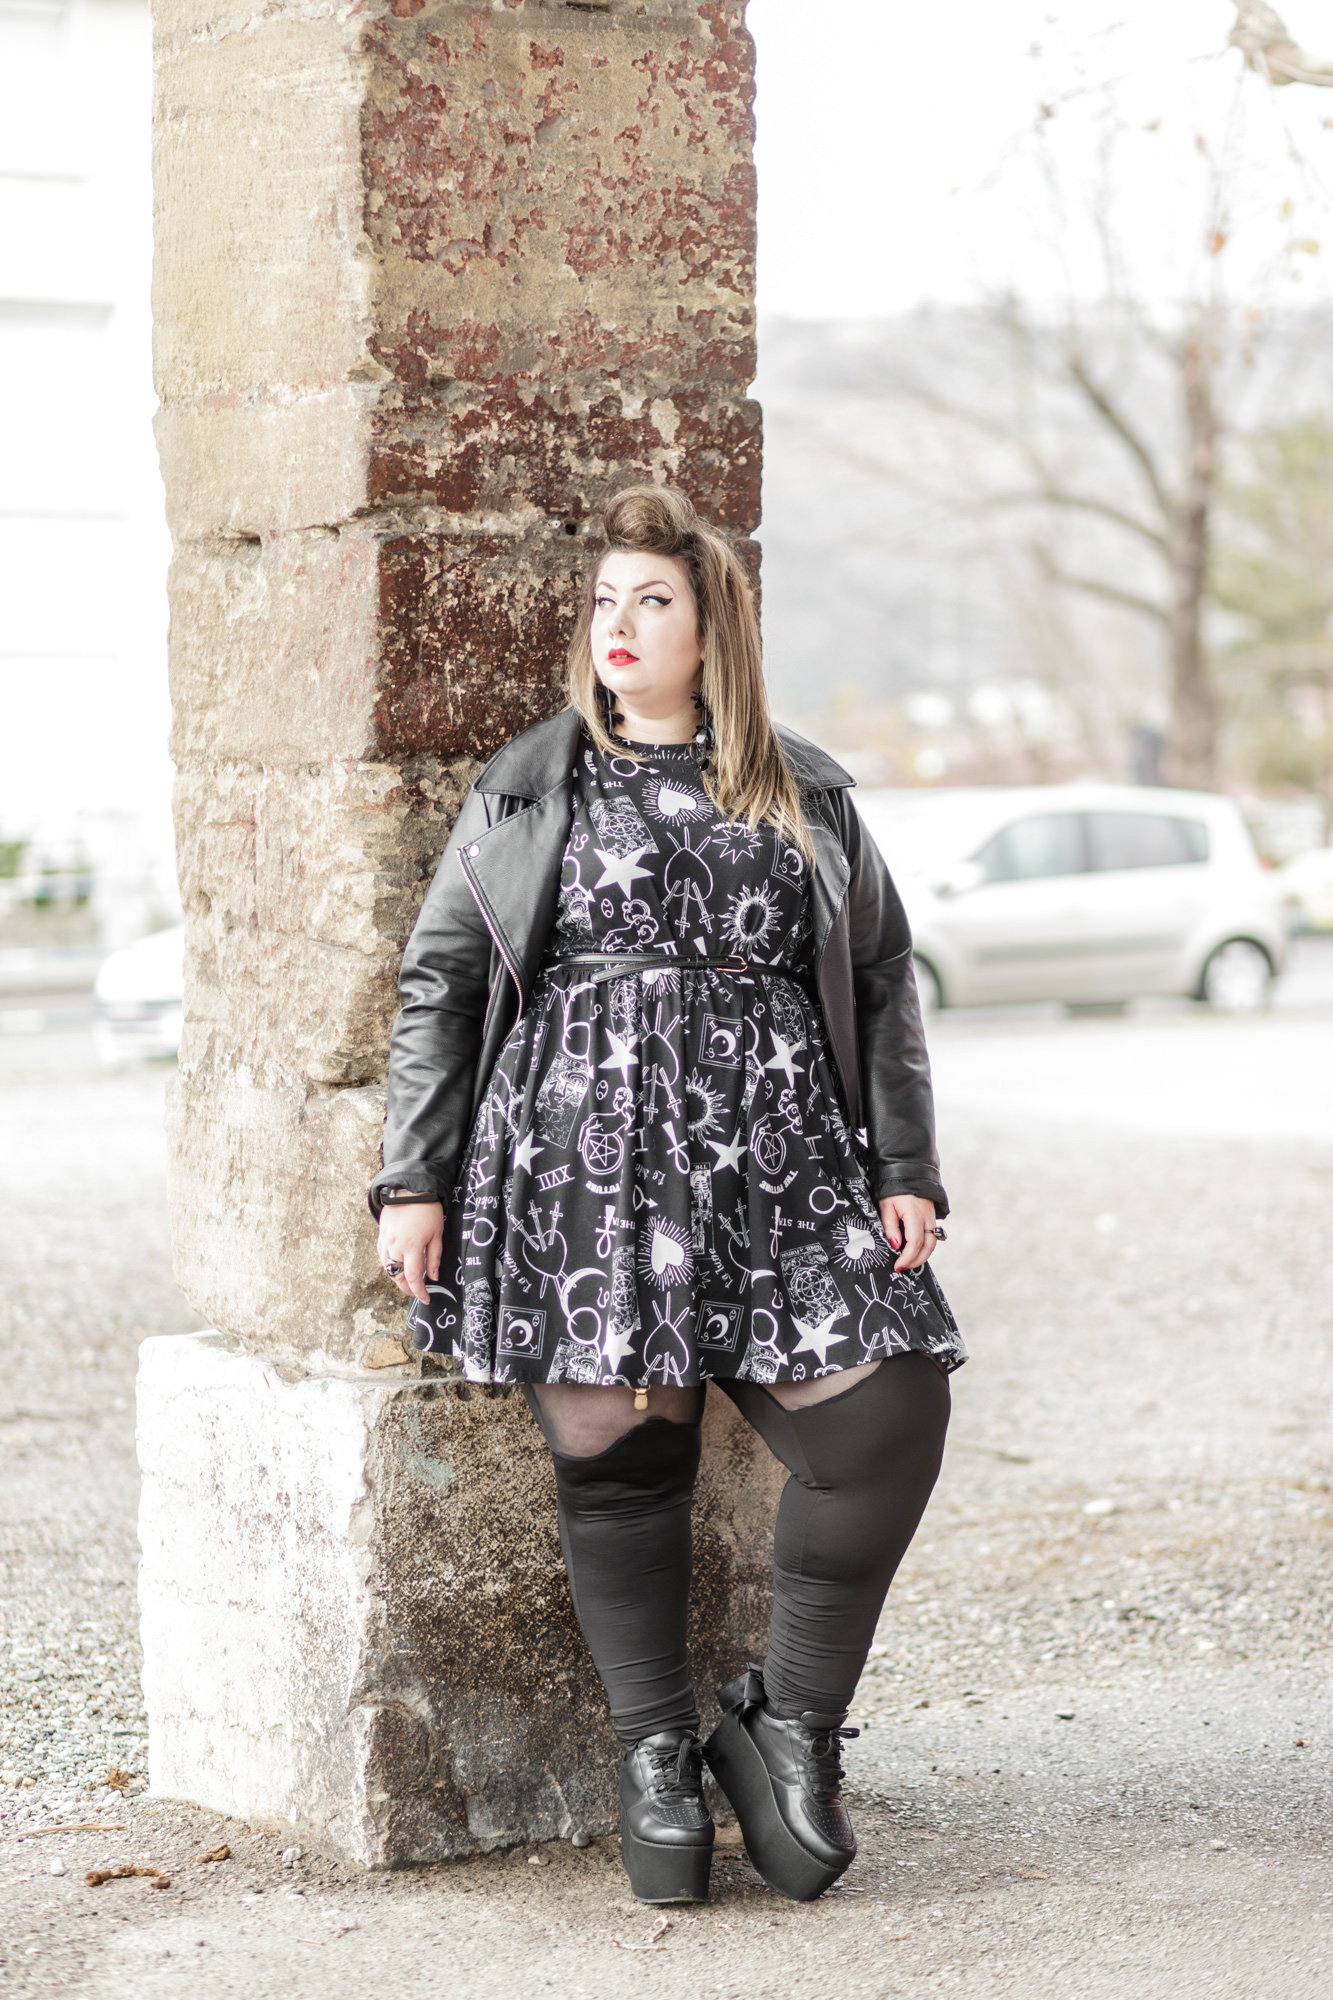 plus size blogger gothic witch alternative curves grande taille curvy girl bbw